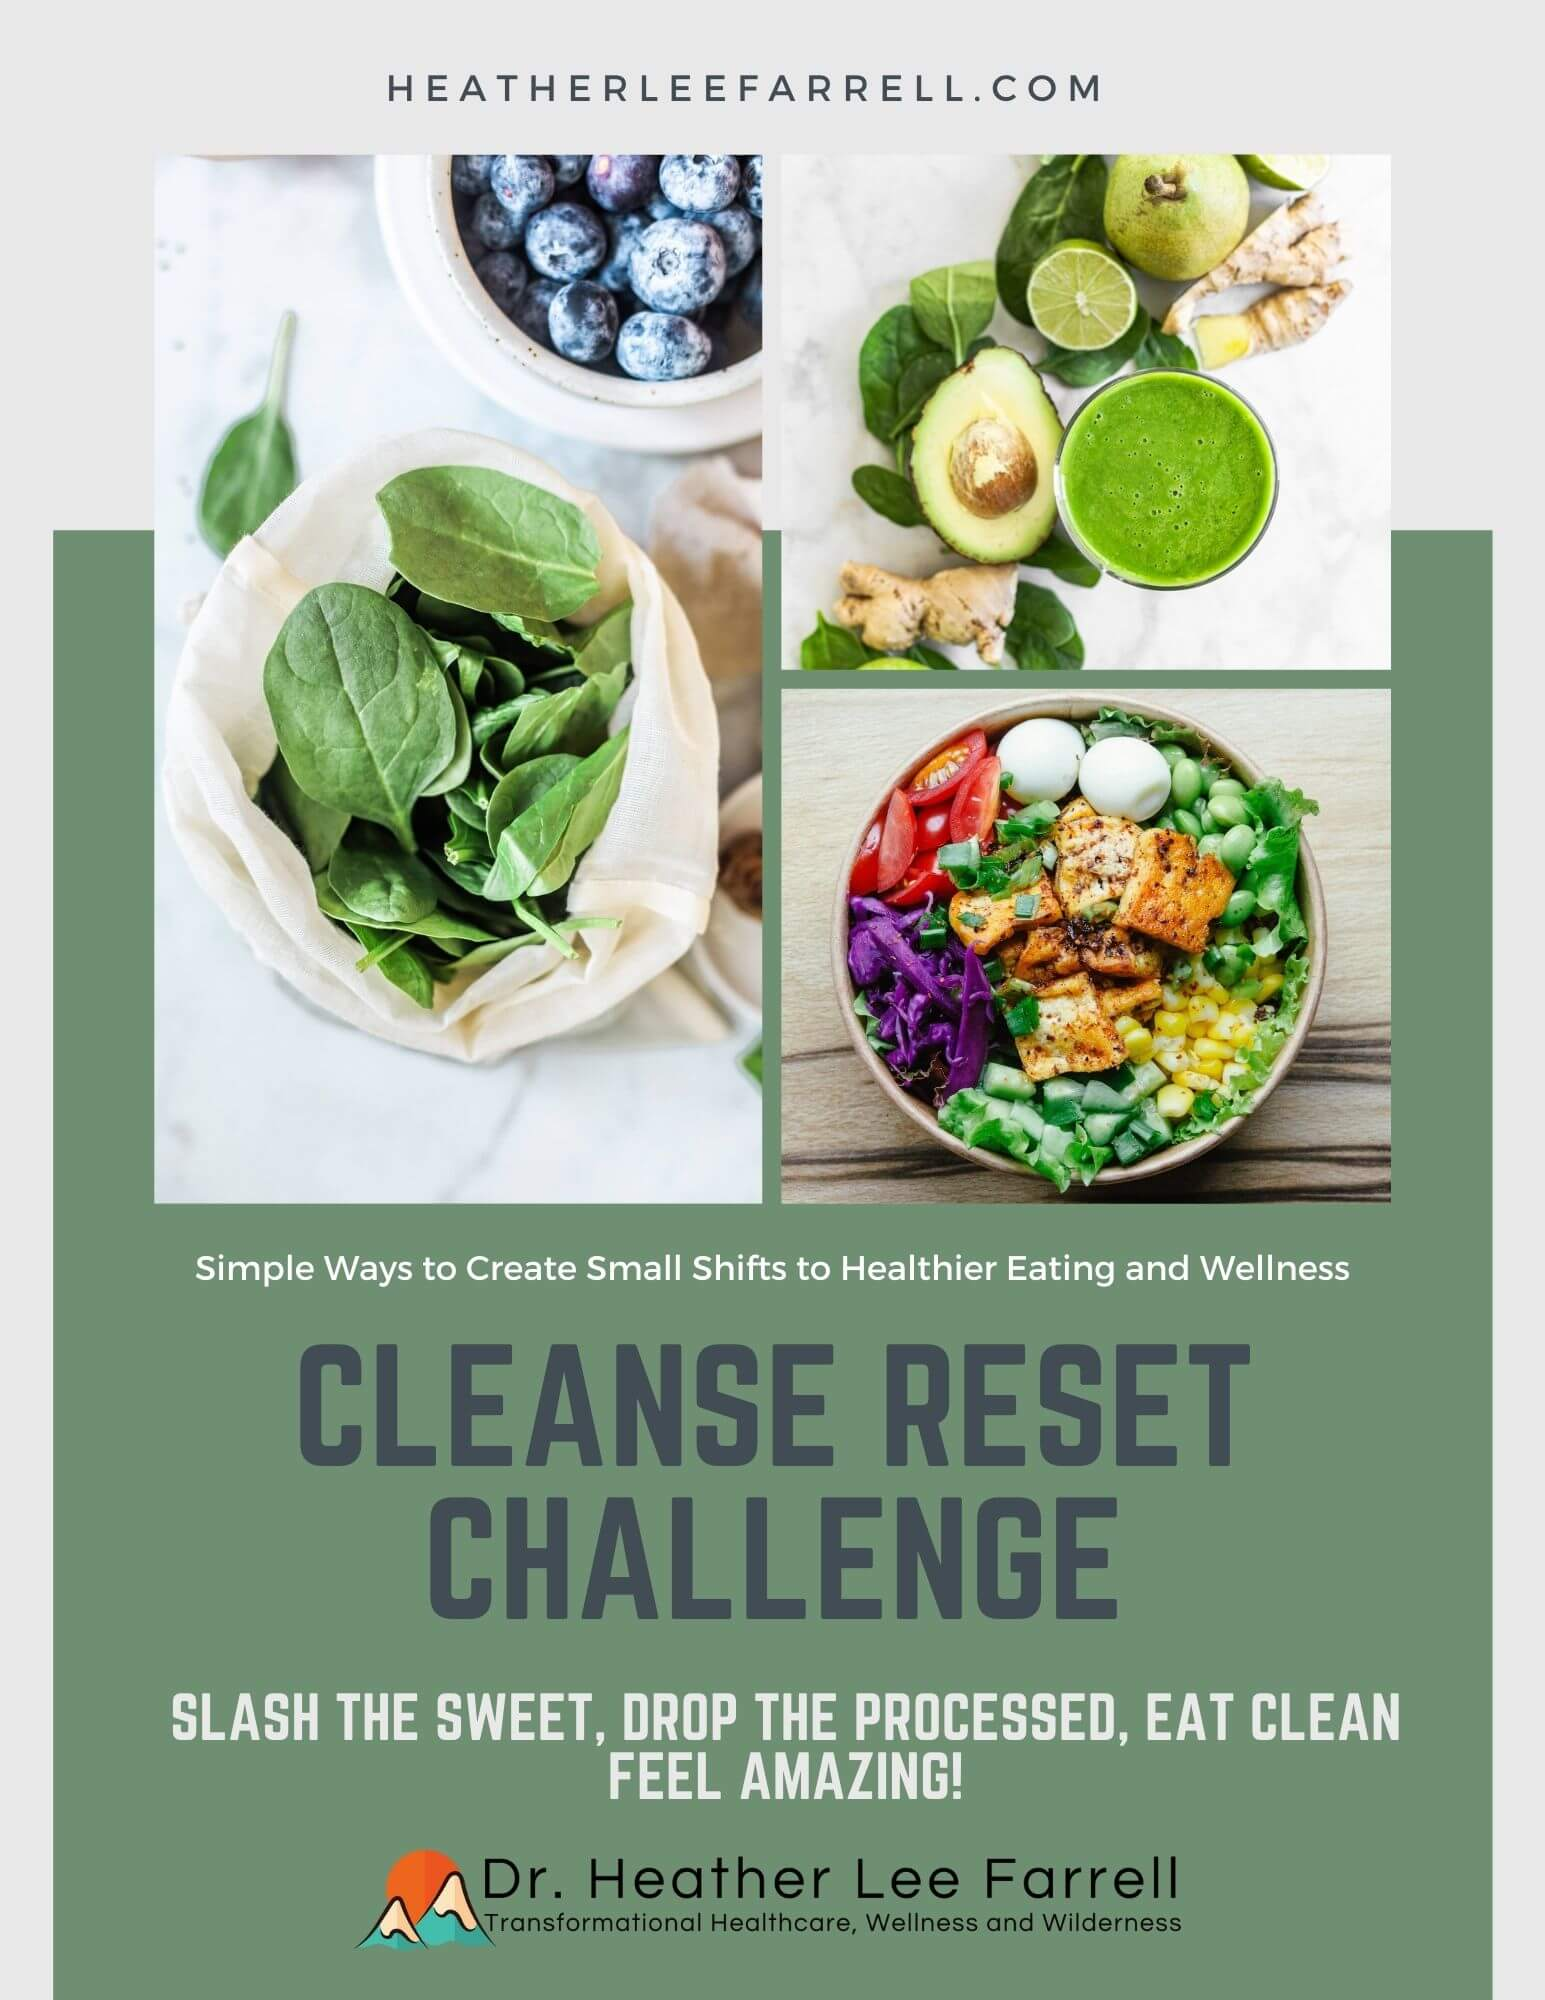 Cleanse reset challenge with food